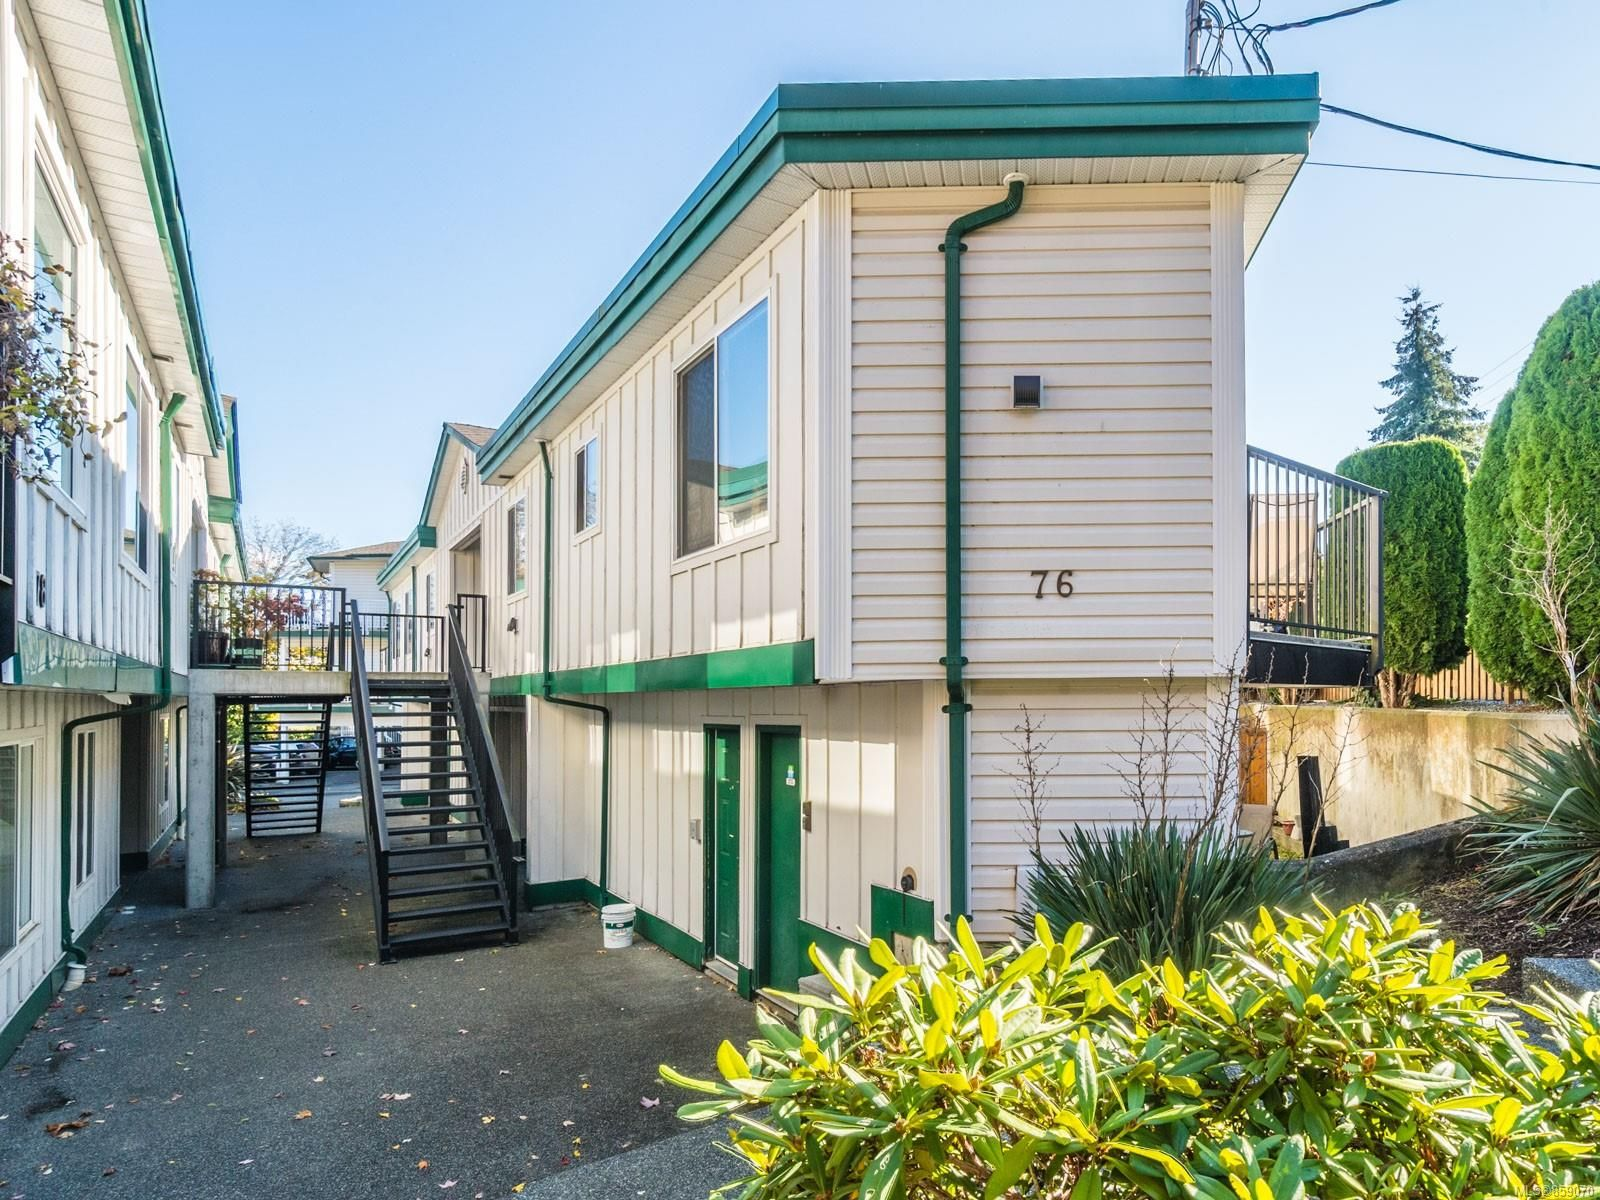 Main Photo: 13 76 Mill St in : Na Old City Condo for sale (Nanaimo)  : MLS®# 859070